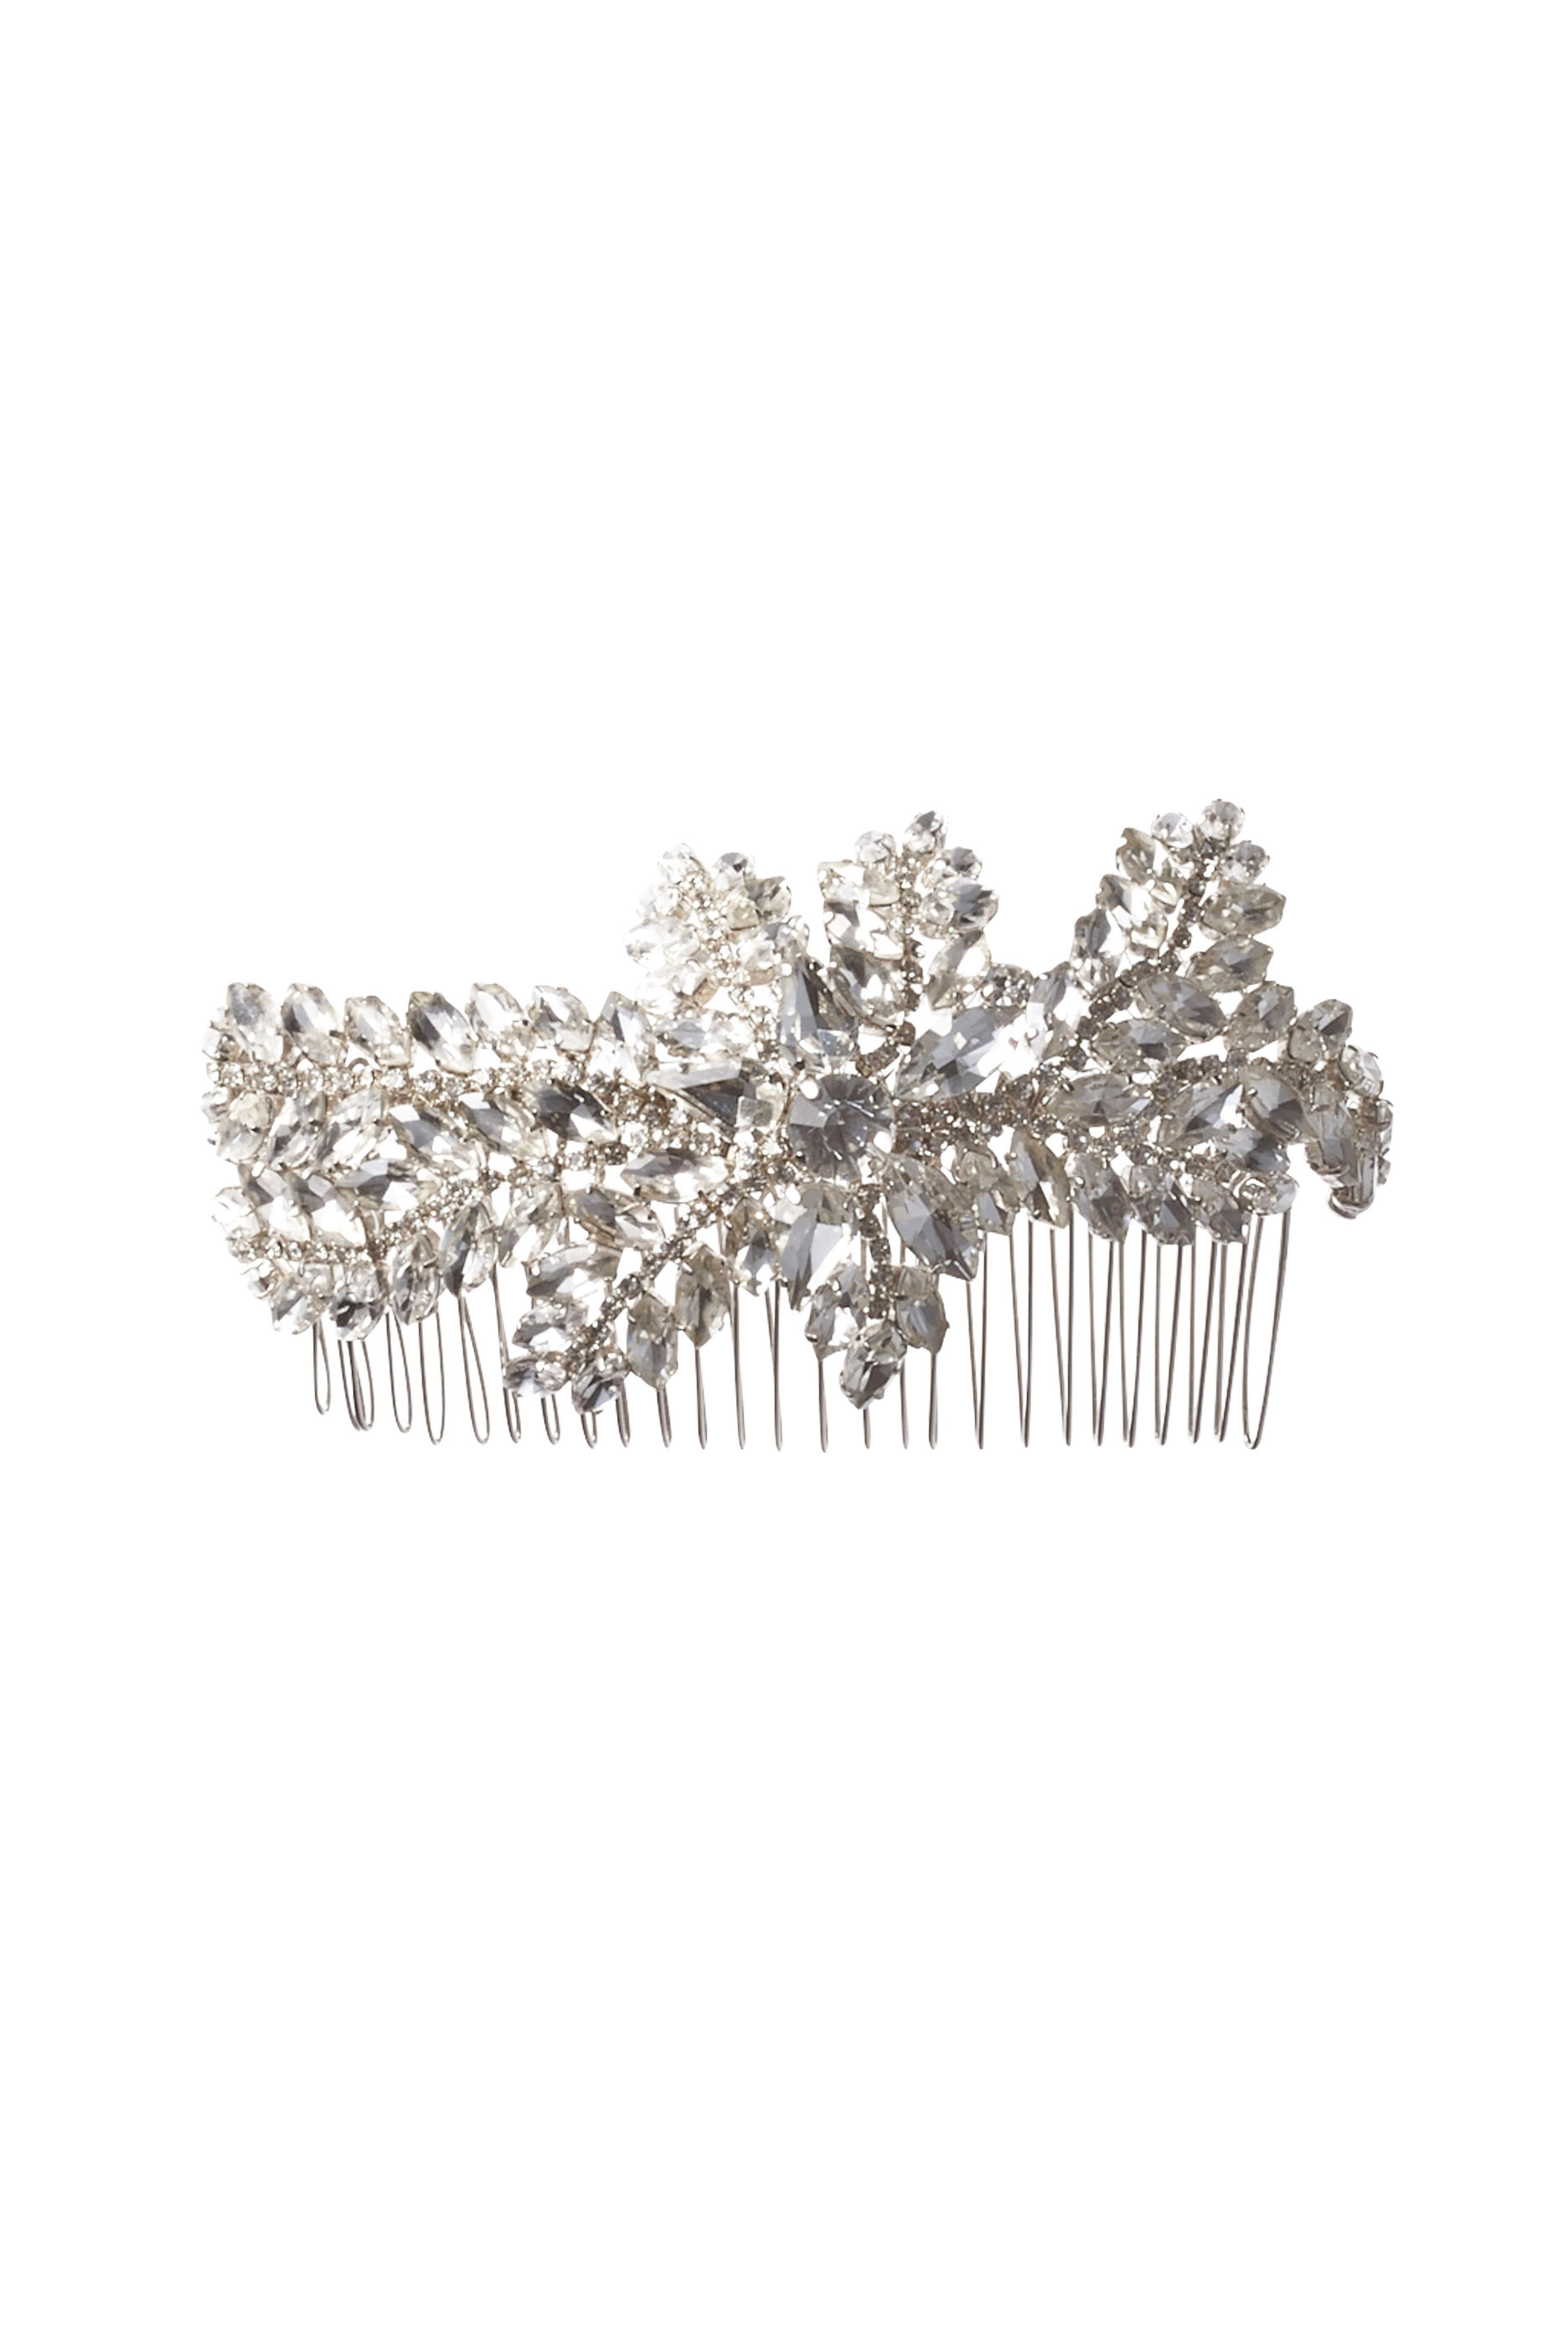 [SELL][Stellina Comb Crystal]by JennyPackham